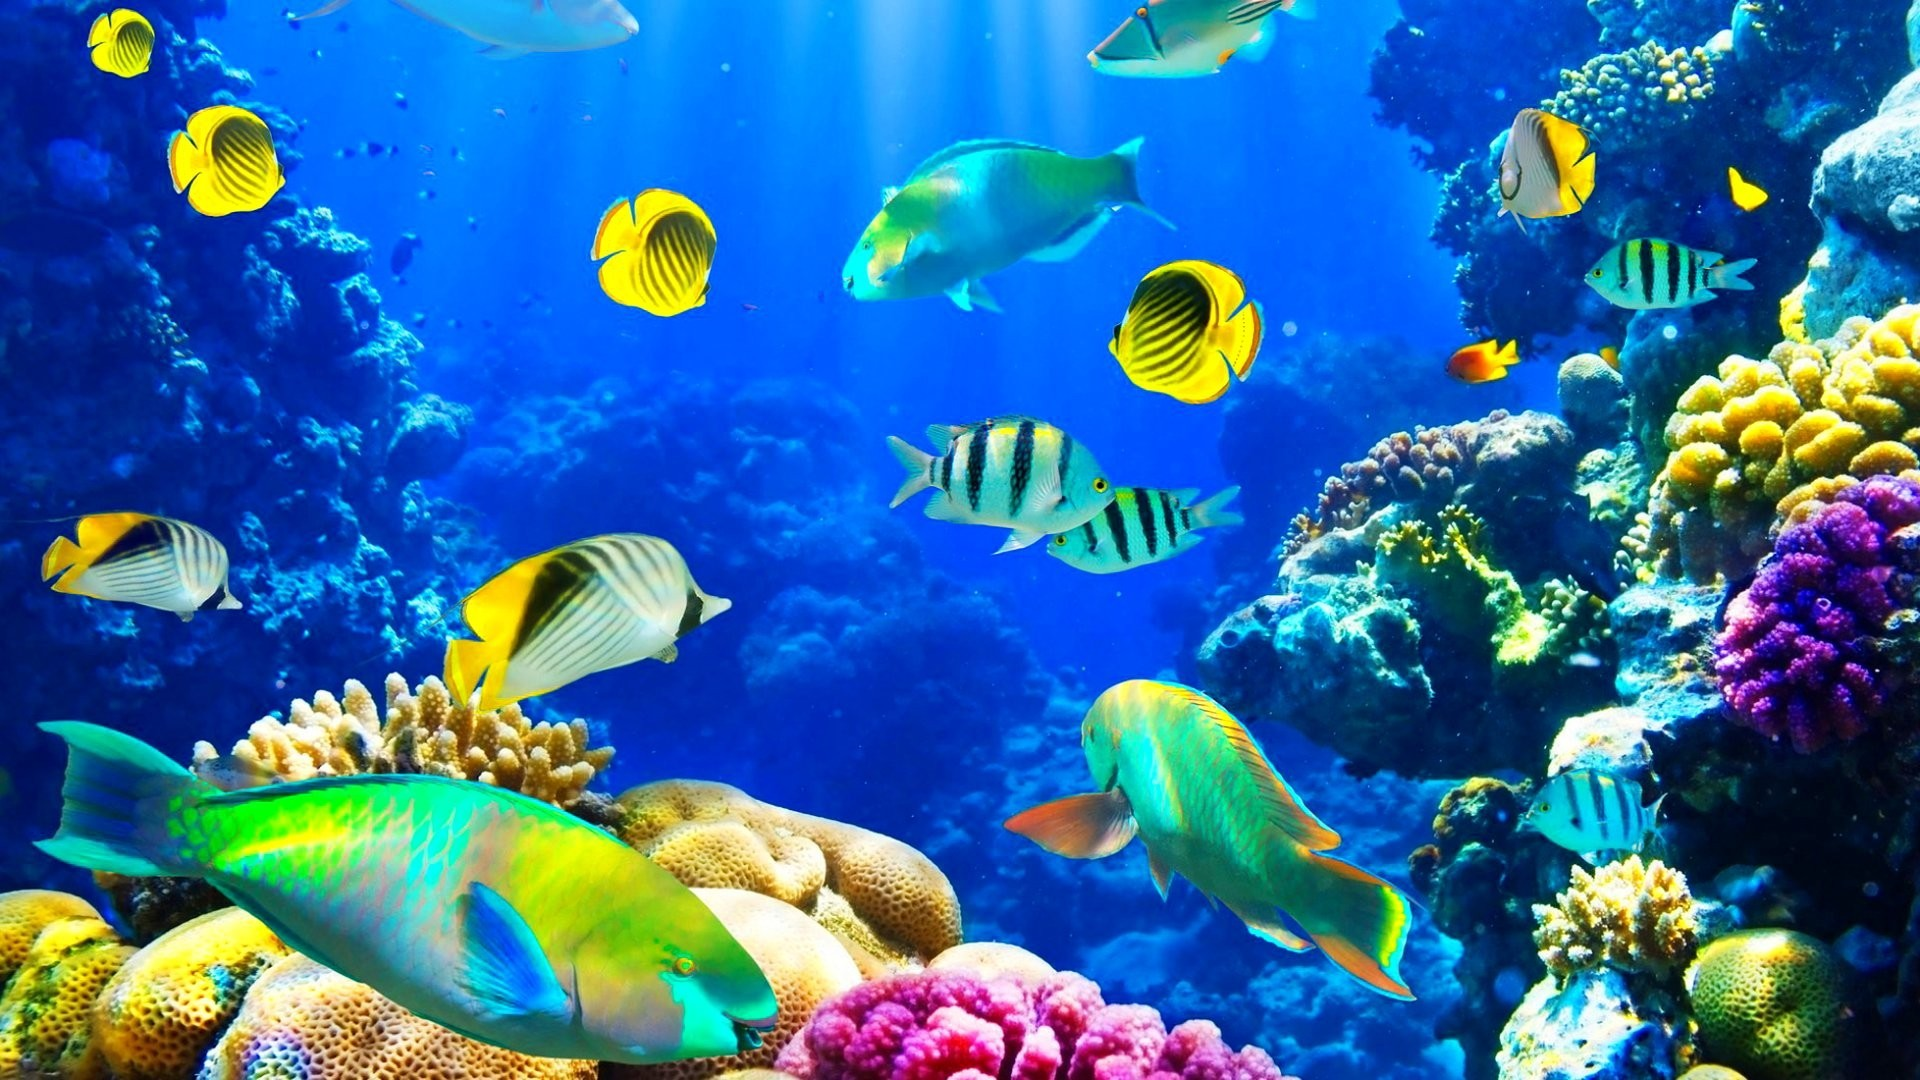 3d fish wallpaper free download for mobile